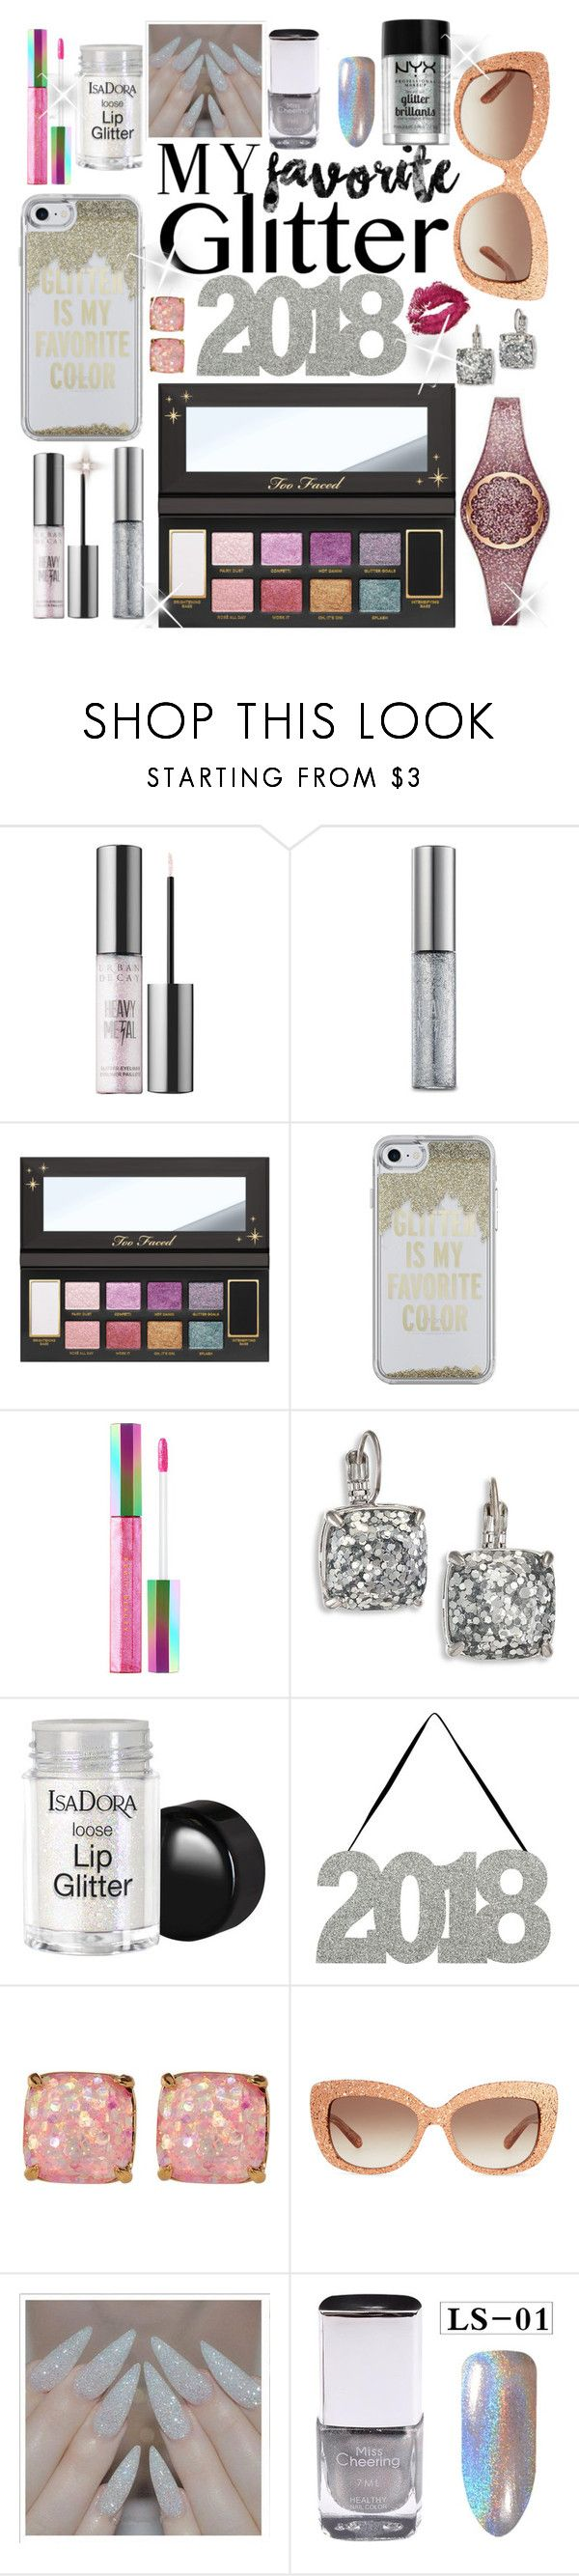 """""""#PolyPresents: Sparkly Beauty"""" by dobesht ❤ liked on Polyvore featuring beauty, Urban Decay, Kate Spade, Puma, NYX, contestentry and polyPresents"""